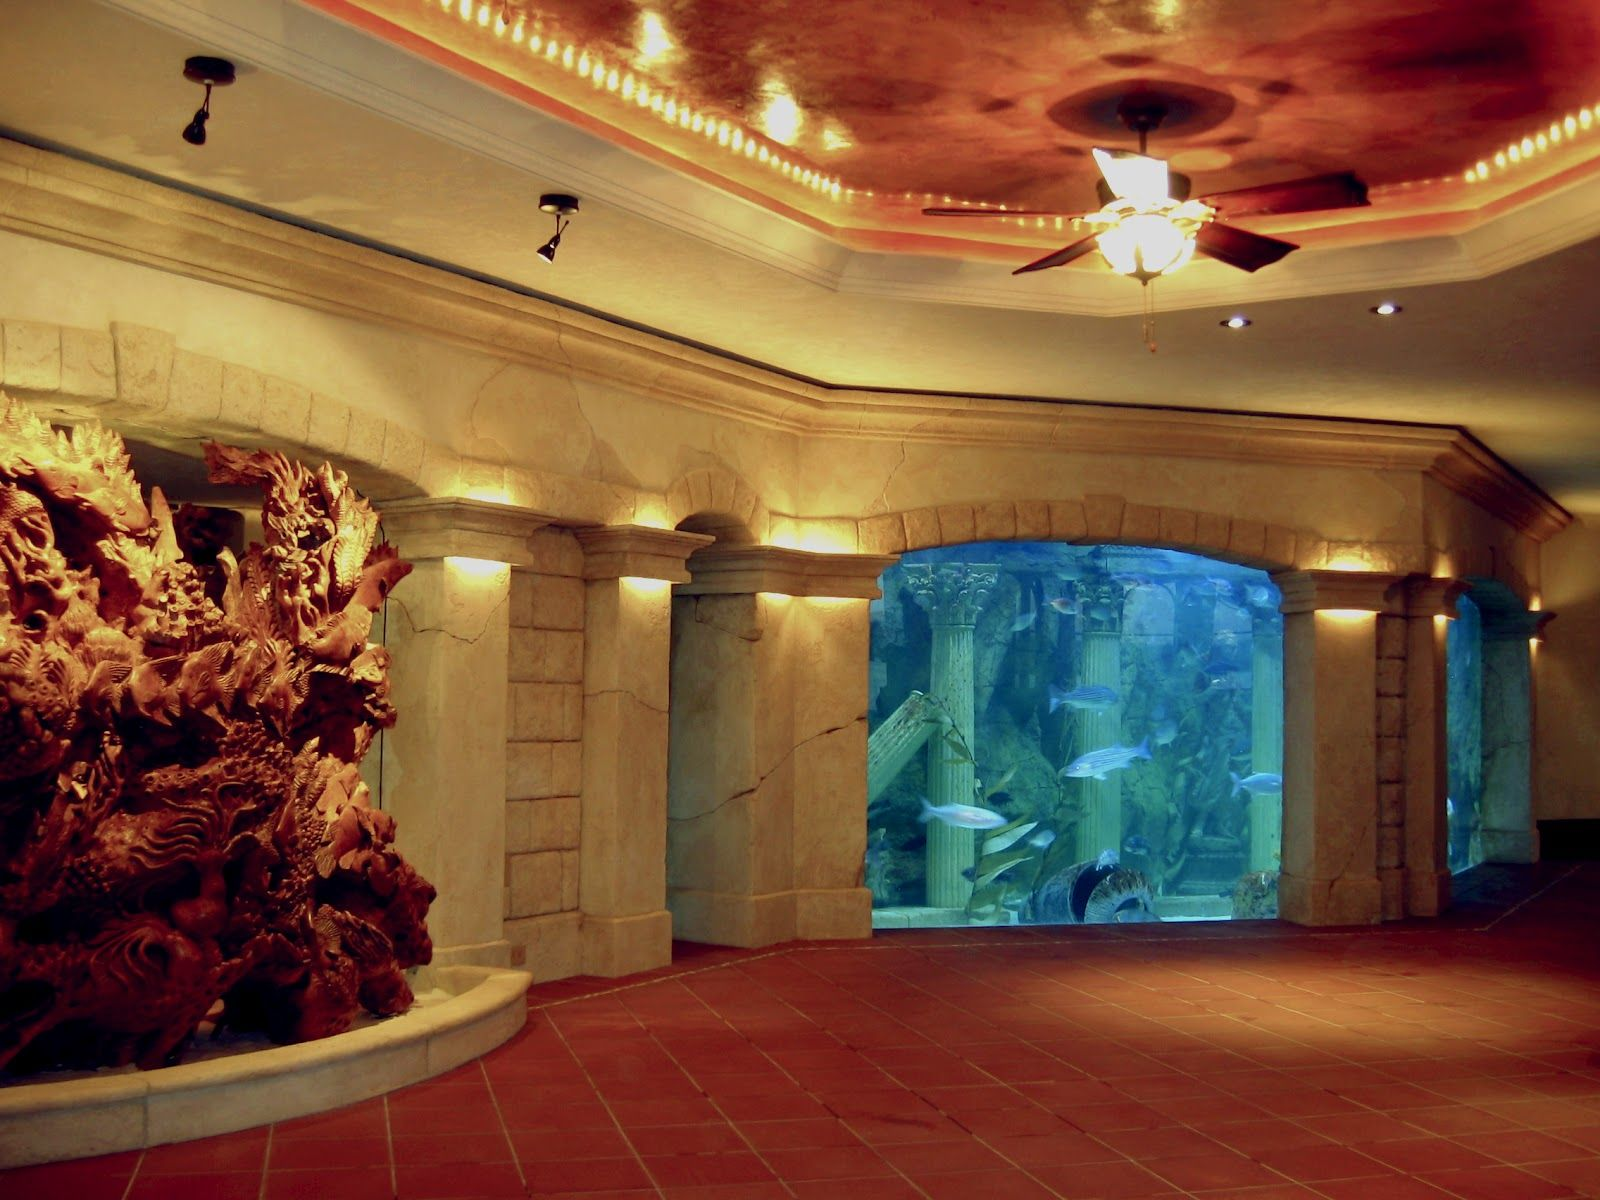 Fish aquarium in chandigarh - I Would Love To Have A Huge Aquarium In My House Private Aquarium In Rumson